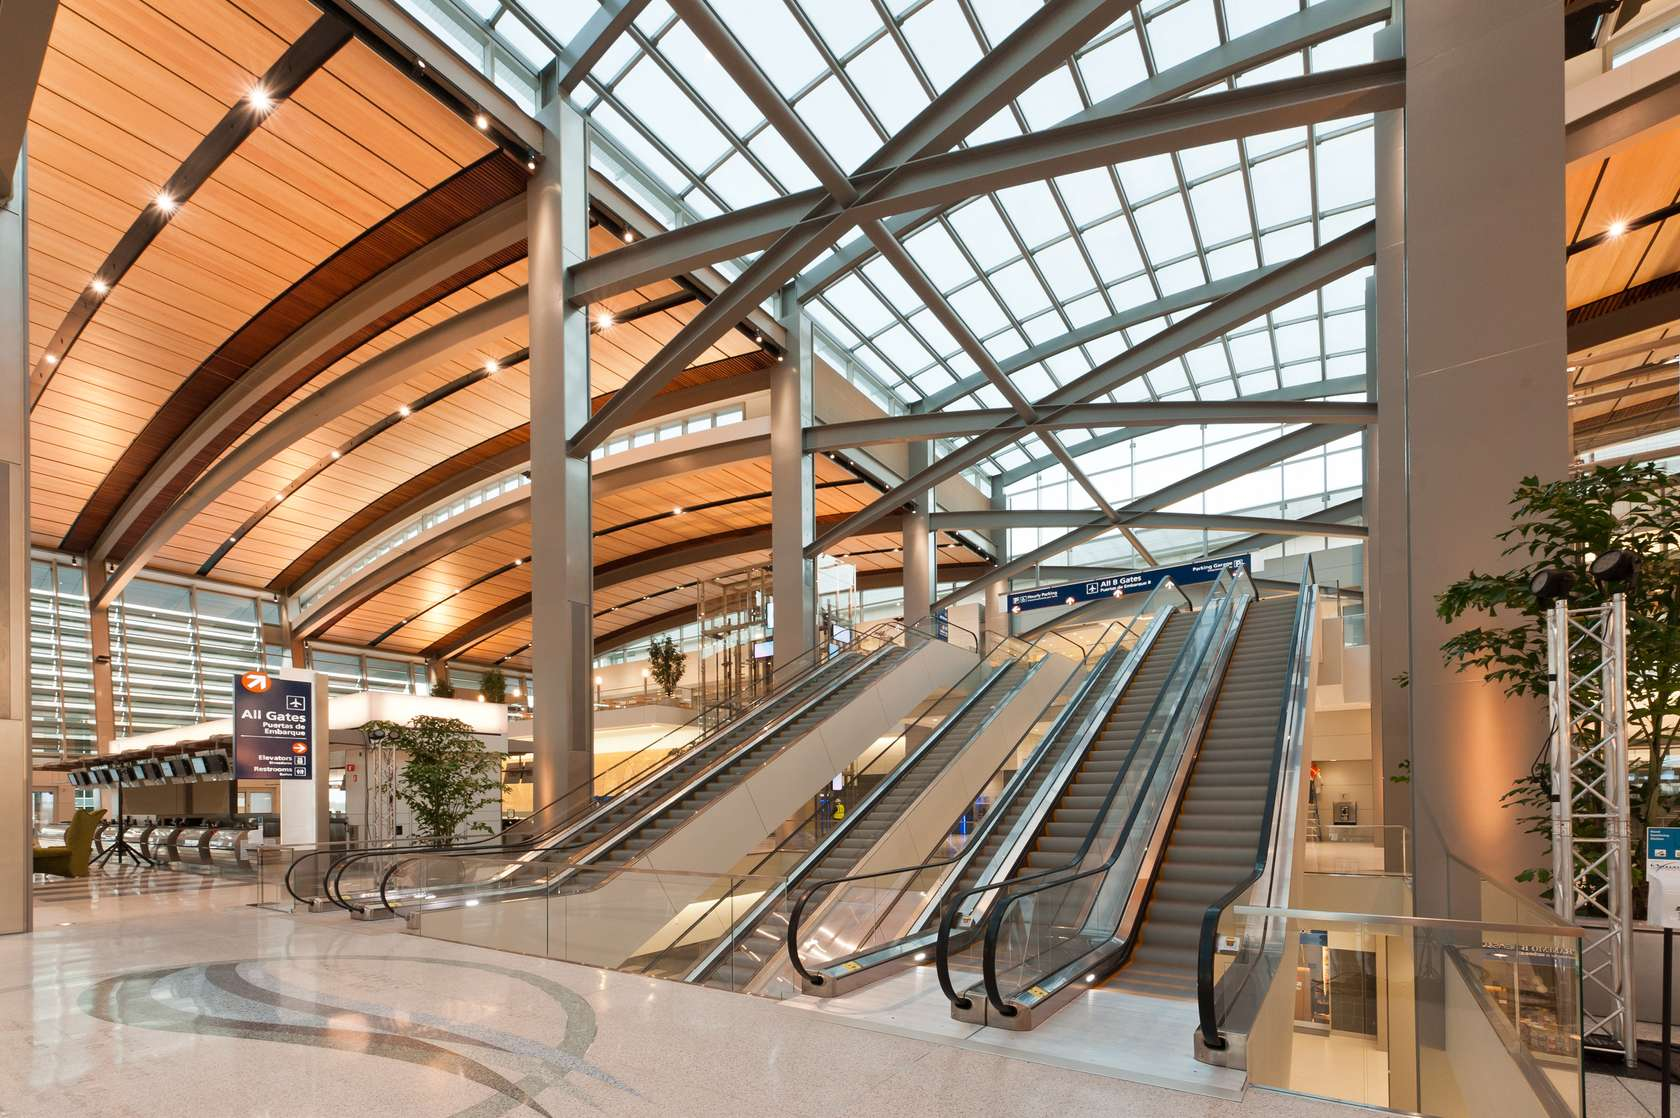 Smf central terminal b architizer for Architecture firms sacramento